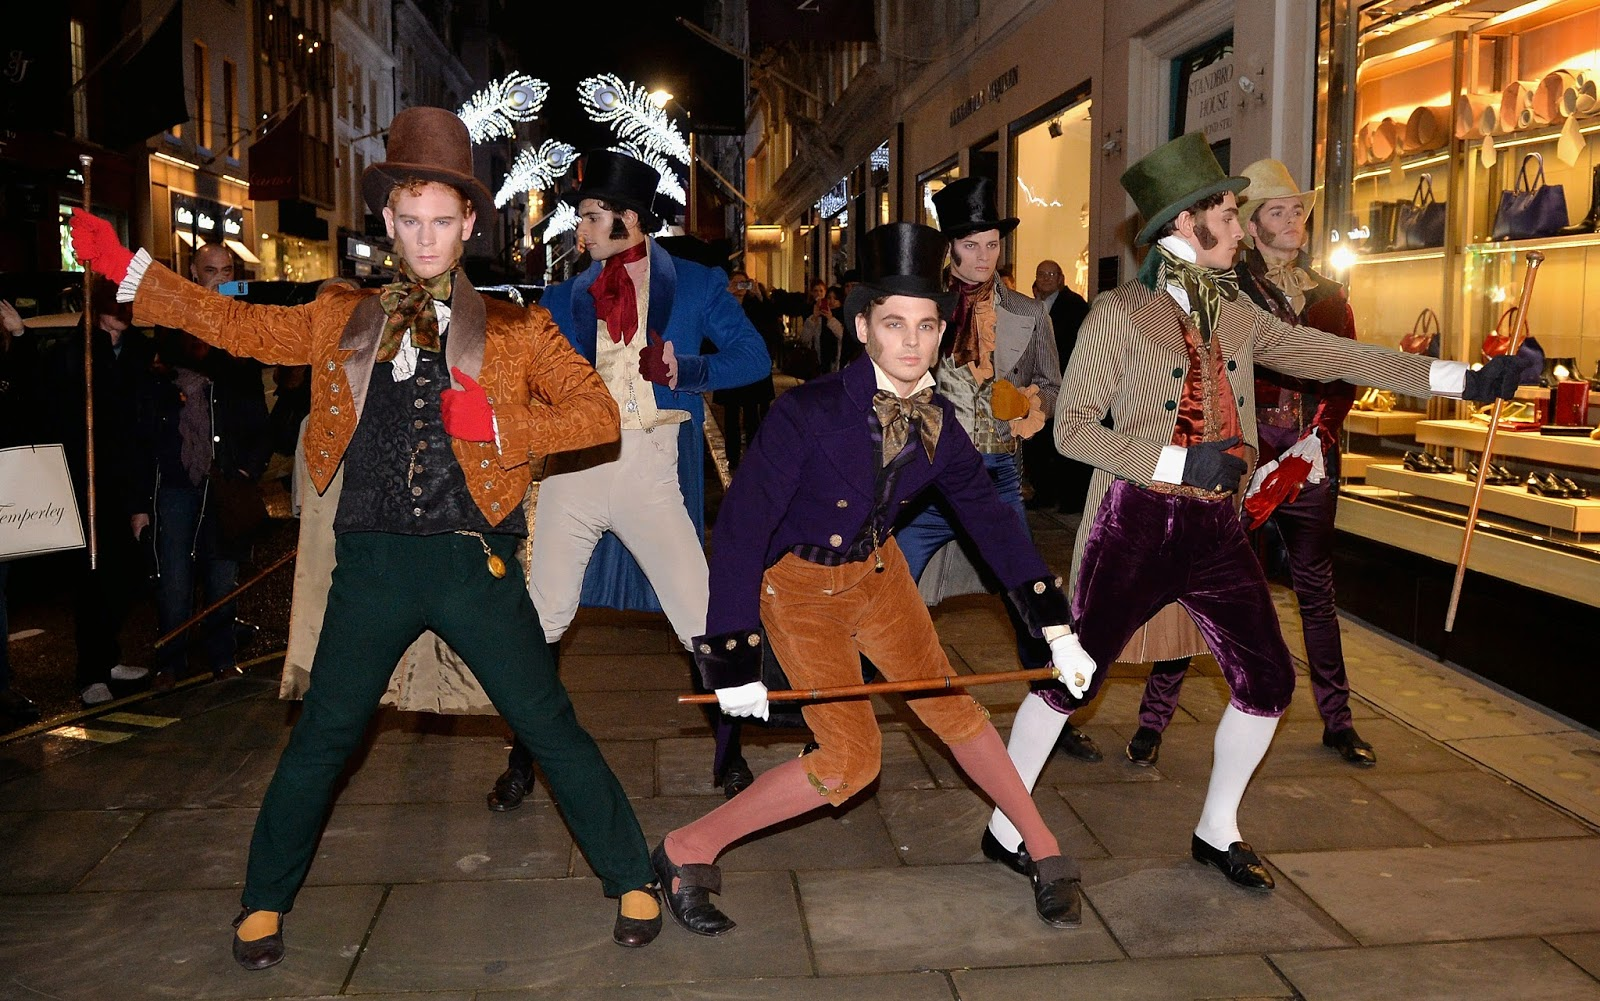 "Six dapper young men re-enacting the famous 18th century ""Bond Street Roll"" in celebration of Bond Street's spectacular Christmas illuminations on November 13, 2014 in London, England. The new West End Company's Bond Street Development Group are responsible for the £1 million Bond Street festive illumination scheme which has been dedicated to these ""gentleman"" of the era. Photo by Anthony Harvey/Getty Images for Bond Street Development Group"